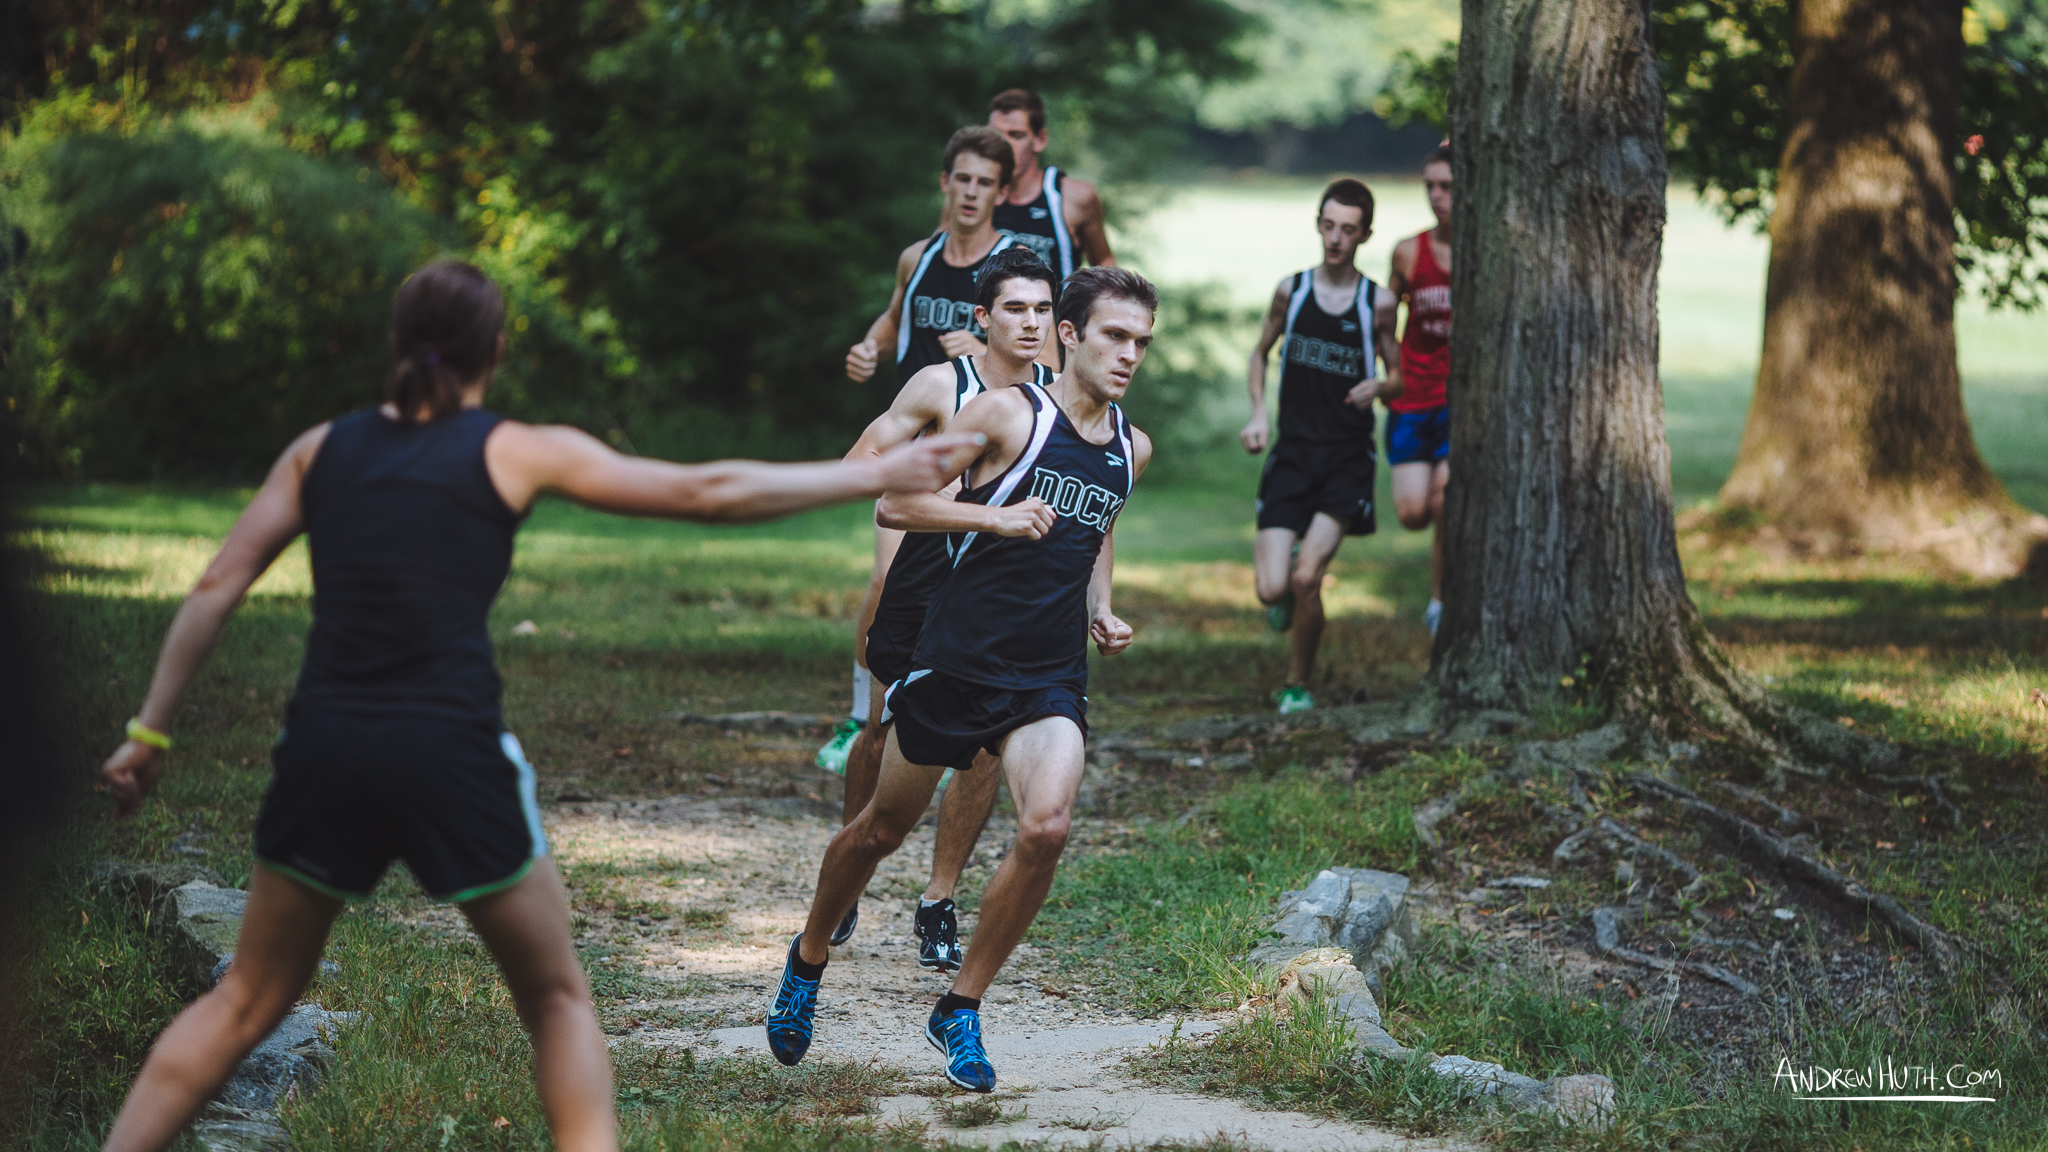 andrew_huth_cd_xcountry_jank_002.jpg